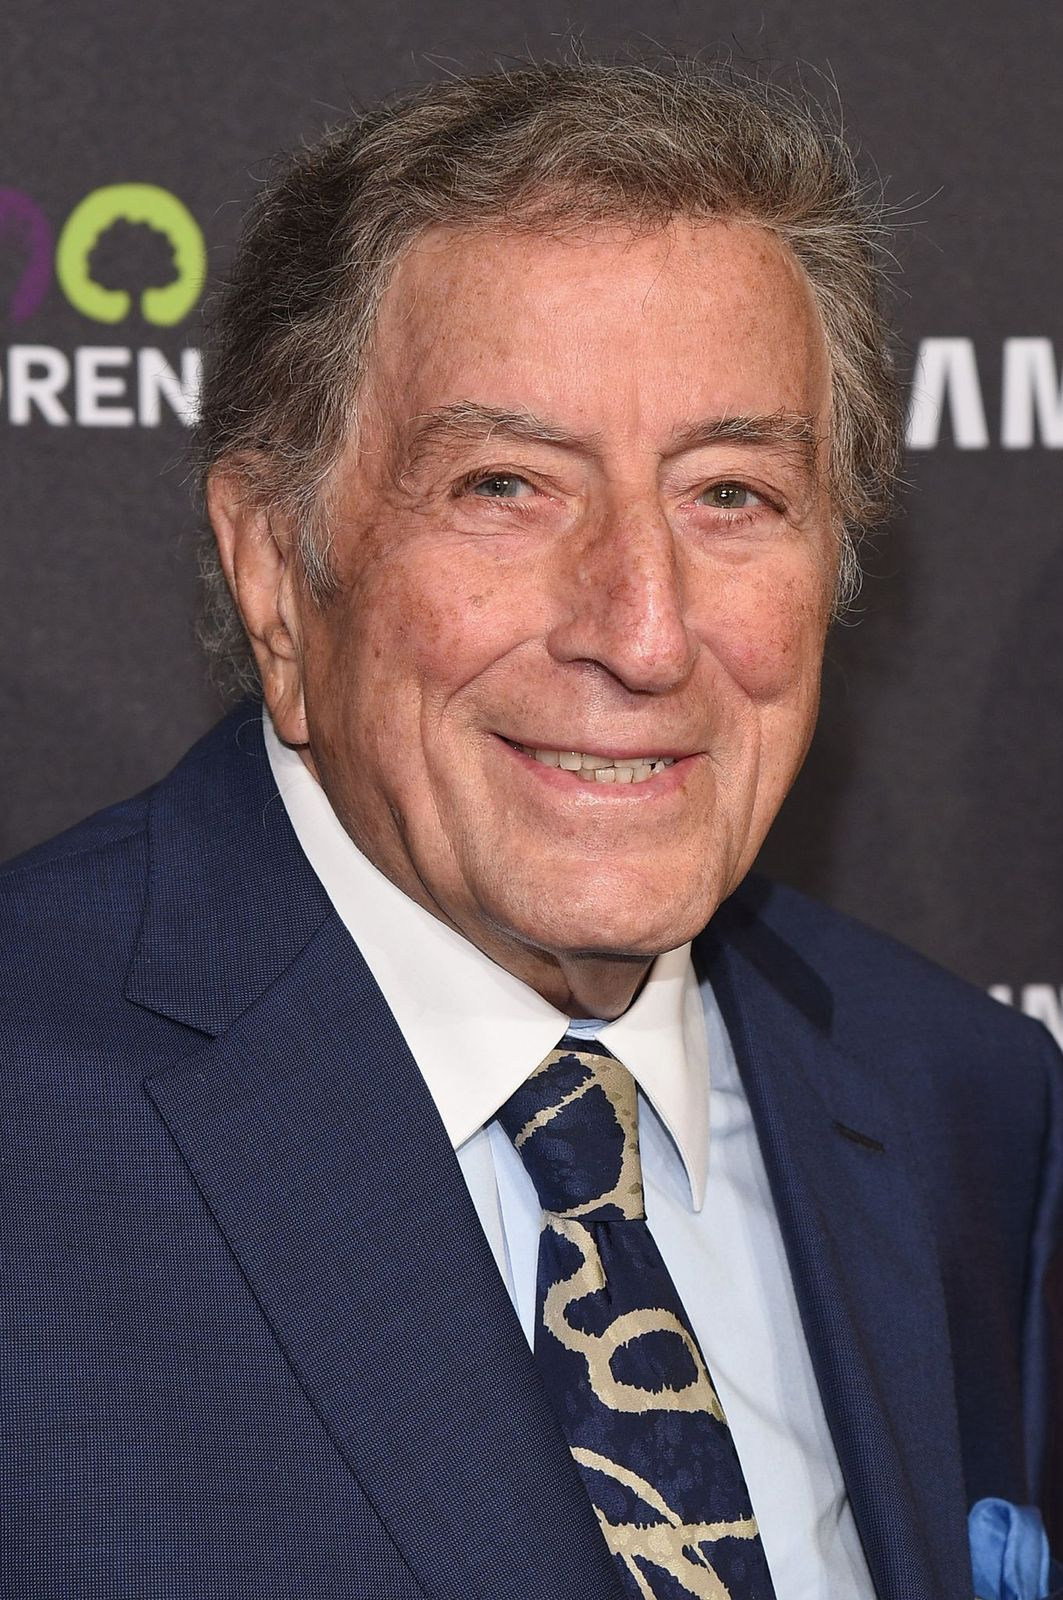 Tony Bennett at the Samsung Hope for Children Gala at the Hammerstein Ballroom on September 17, 2015, in New York City | Photo: Getty Images